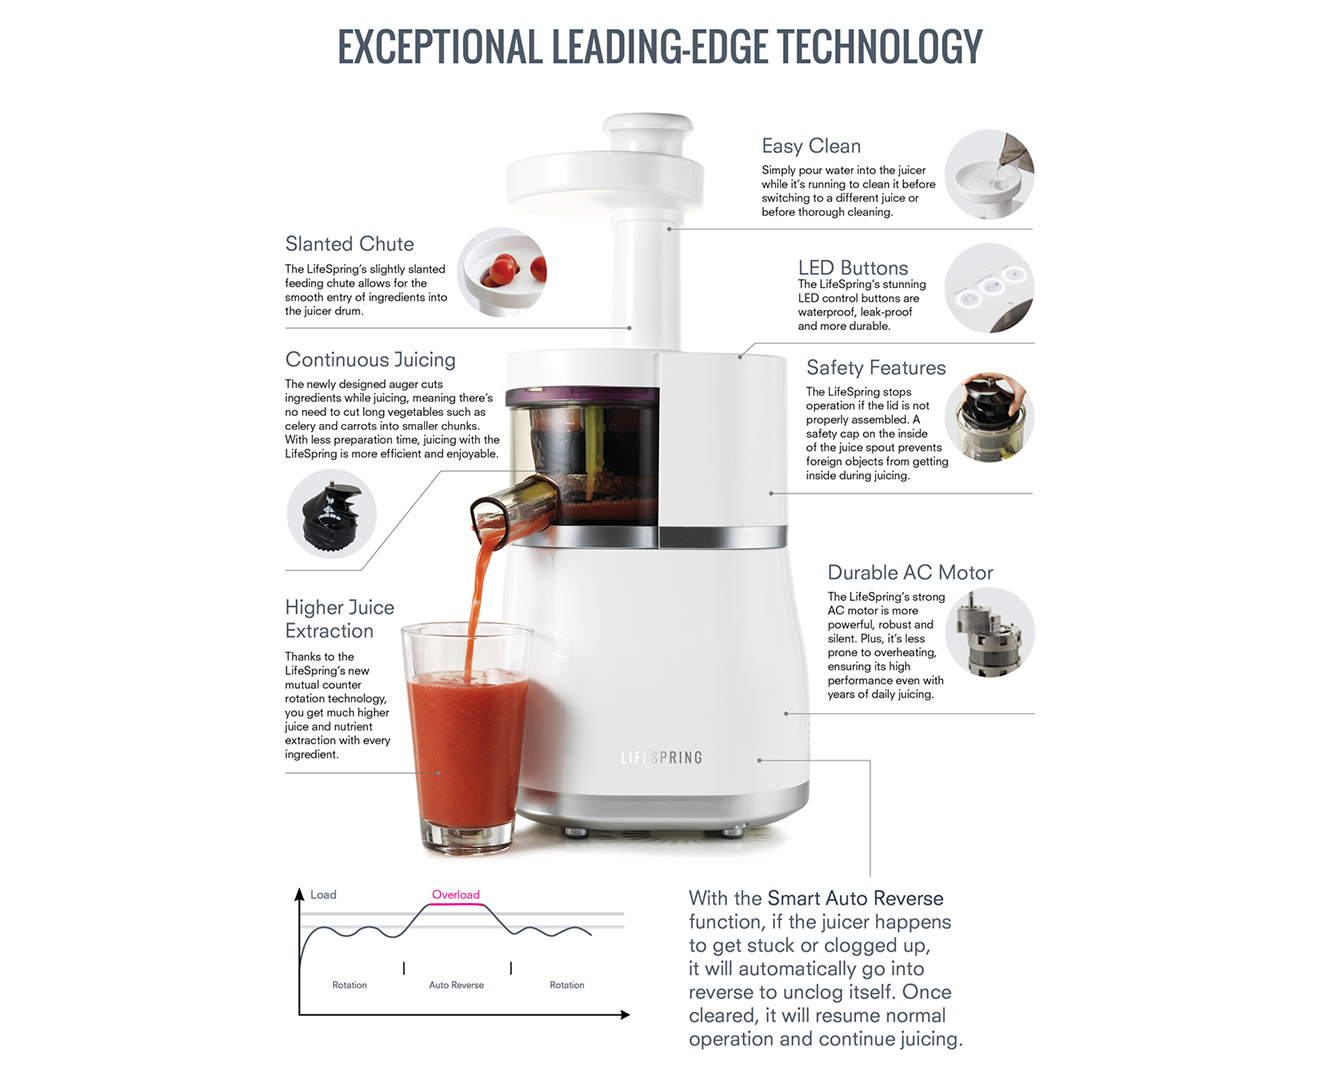 Slow Juicer Female Daily : Lifespring Slow Juicer w/ Ceramic Knife Set - White Great daily deals at Australia s favourite ...